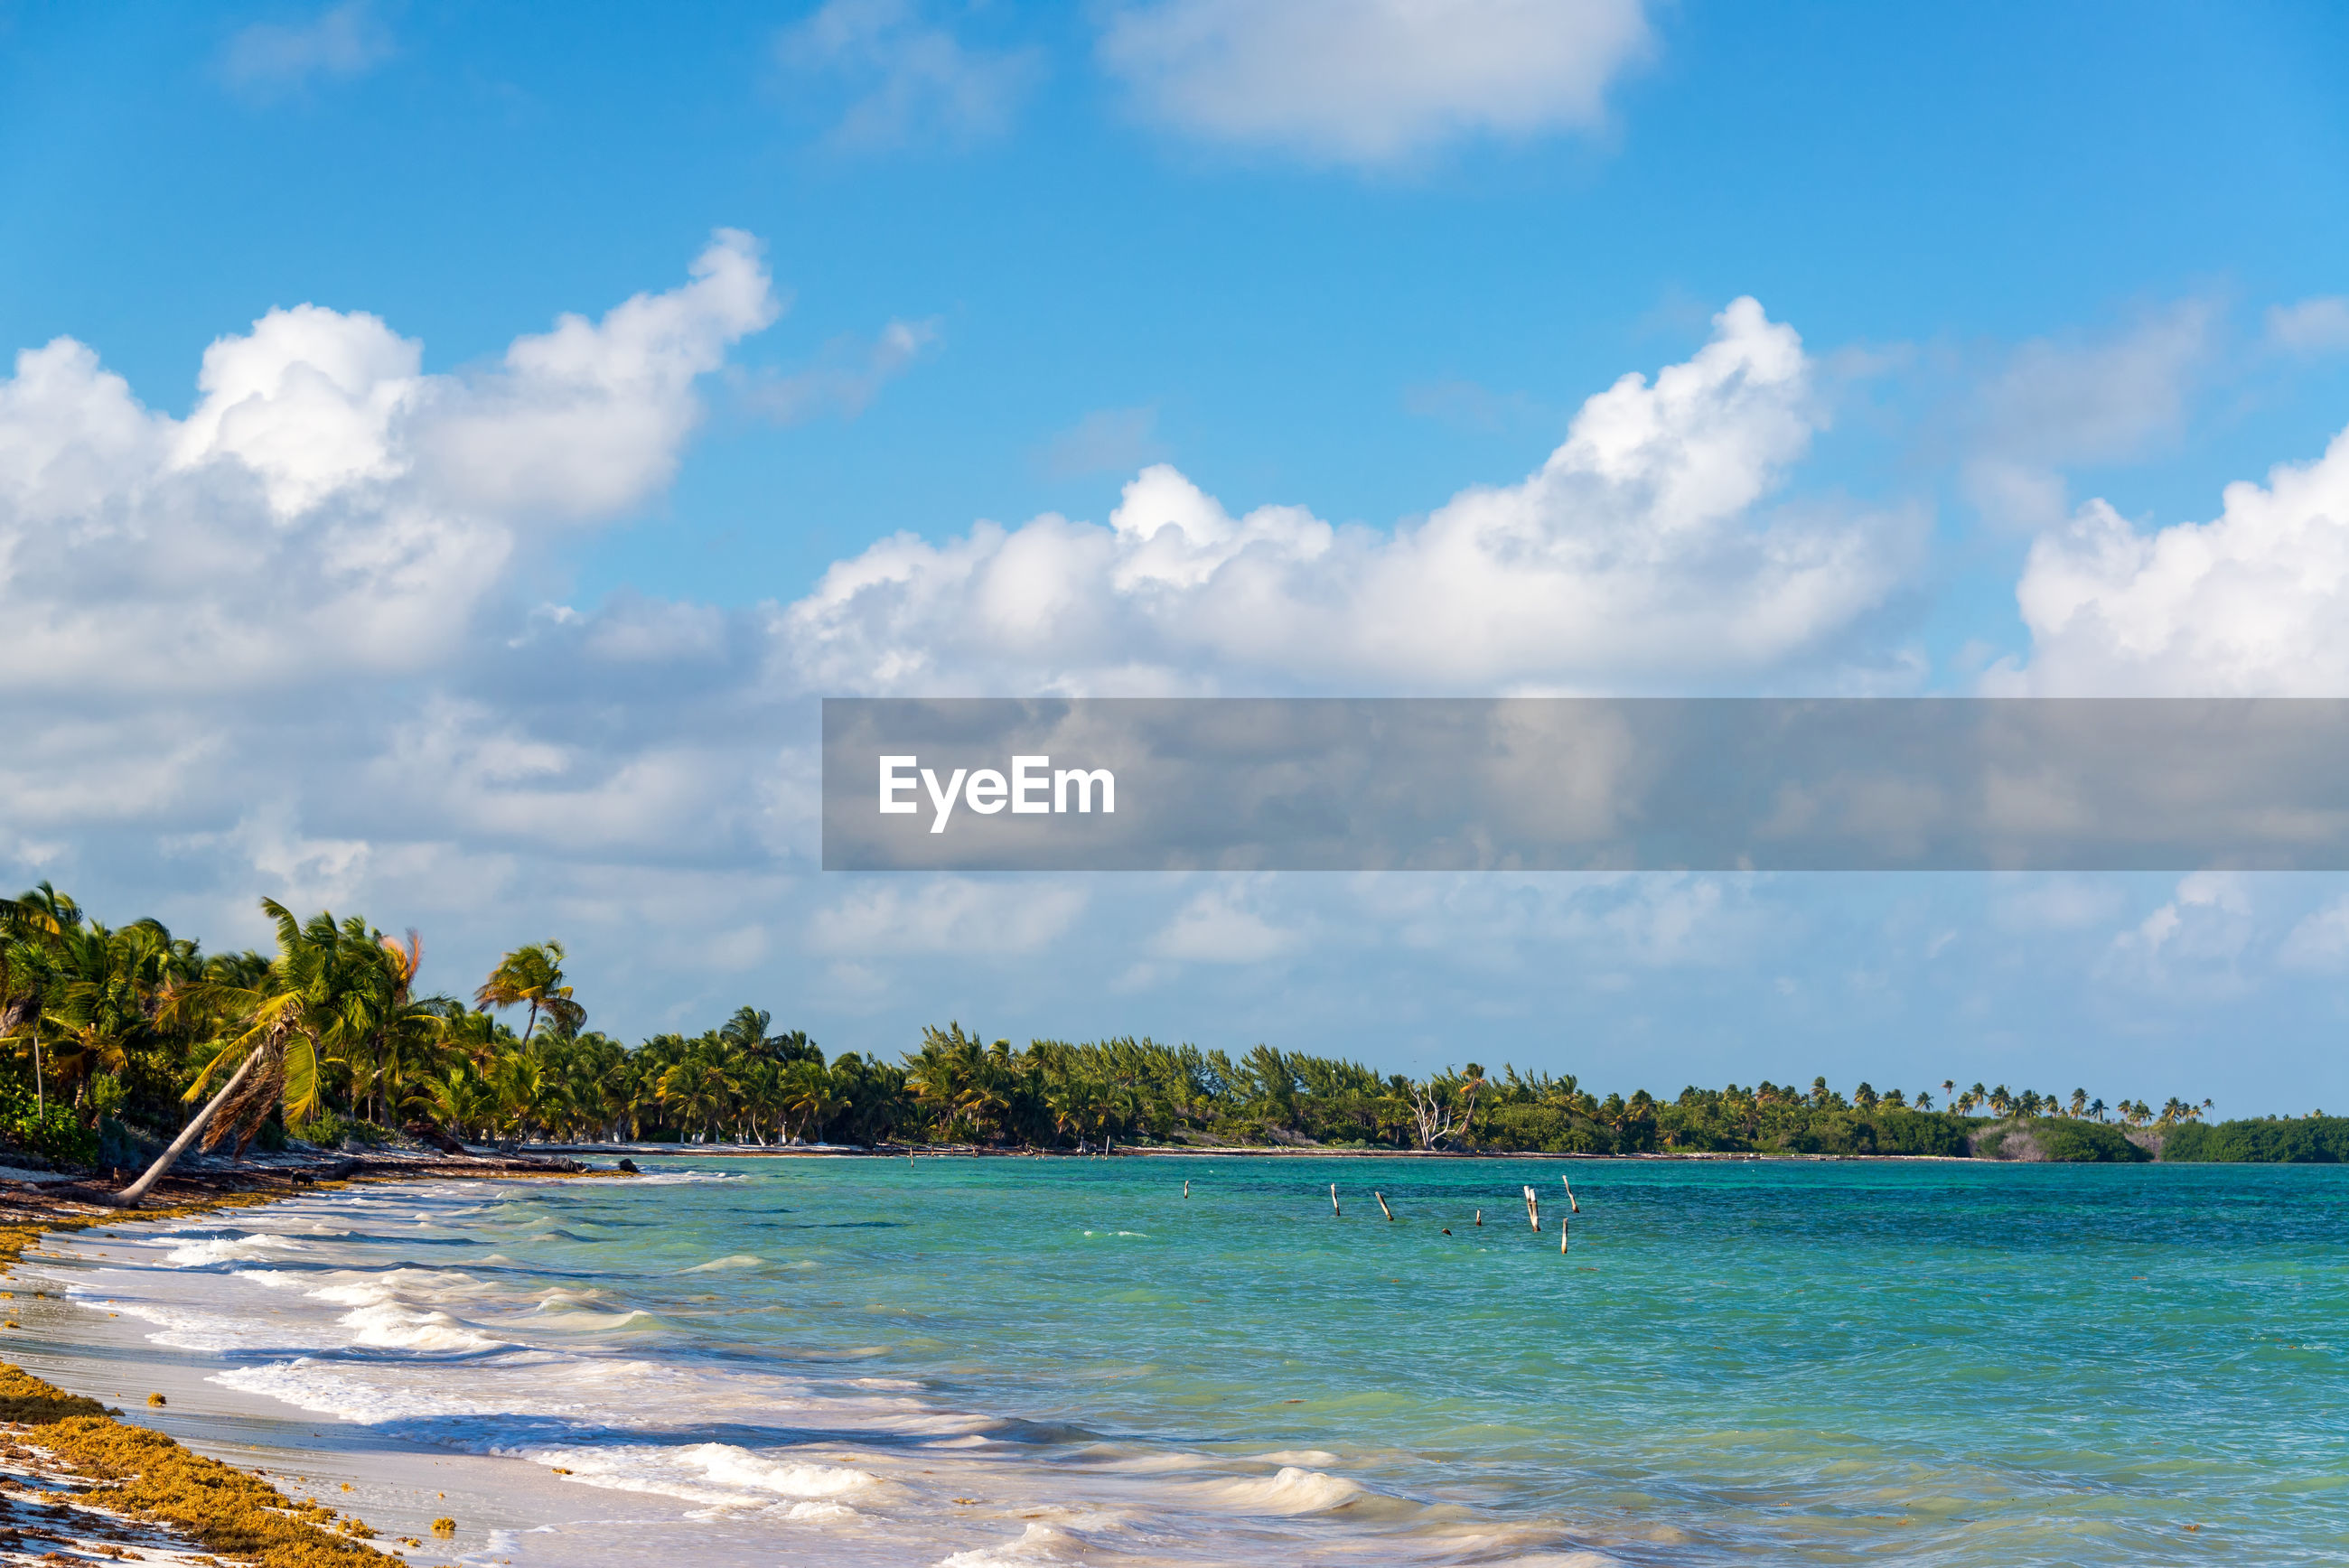 Scenic view of palm trees at beach against sky during sunny day